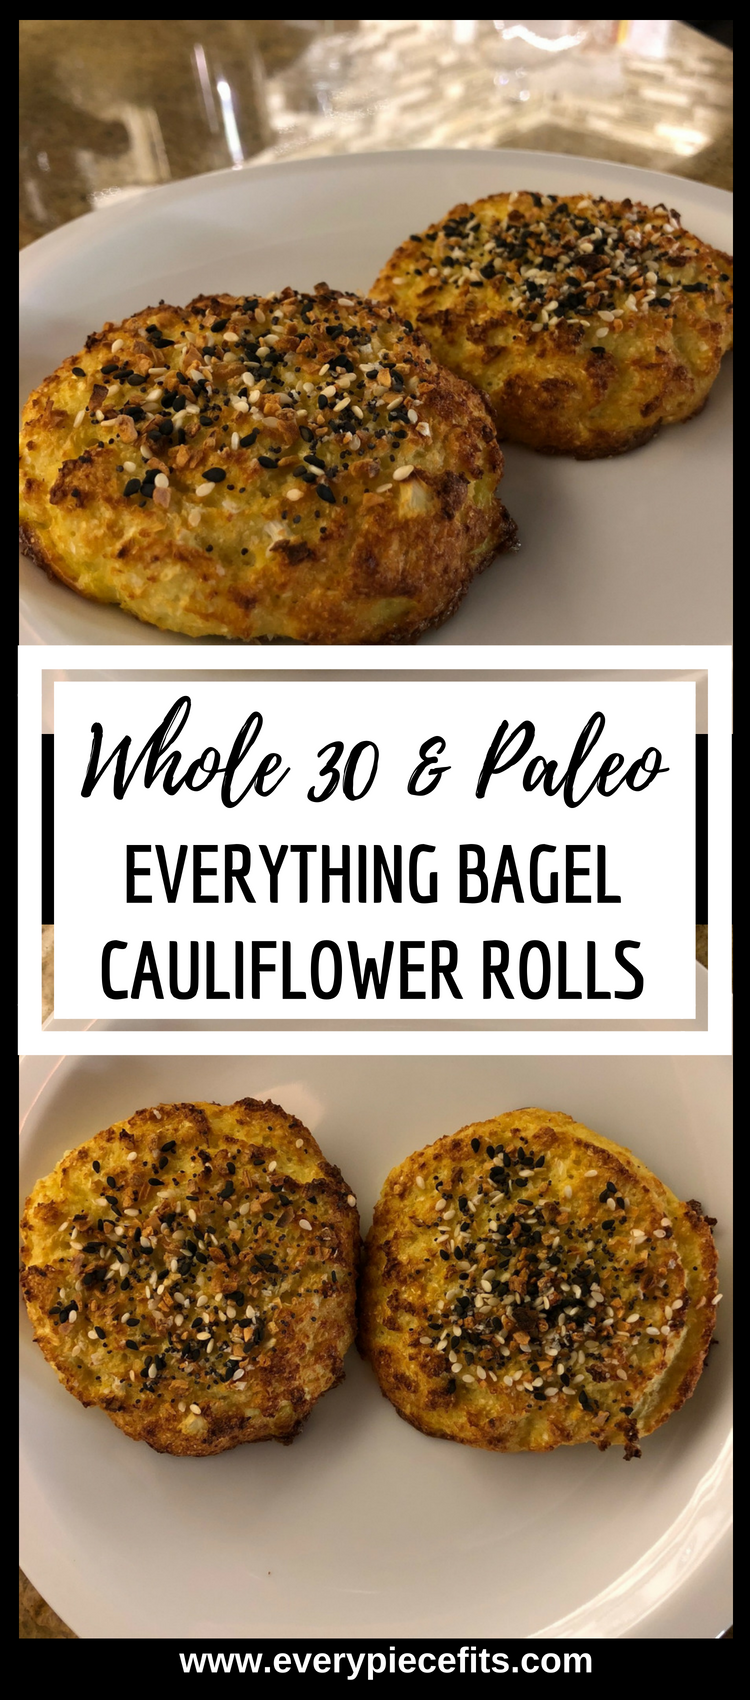 Whole 30 & Paleo Everything Bagel Cauliflower Rolls.png